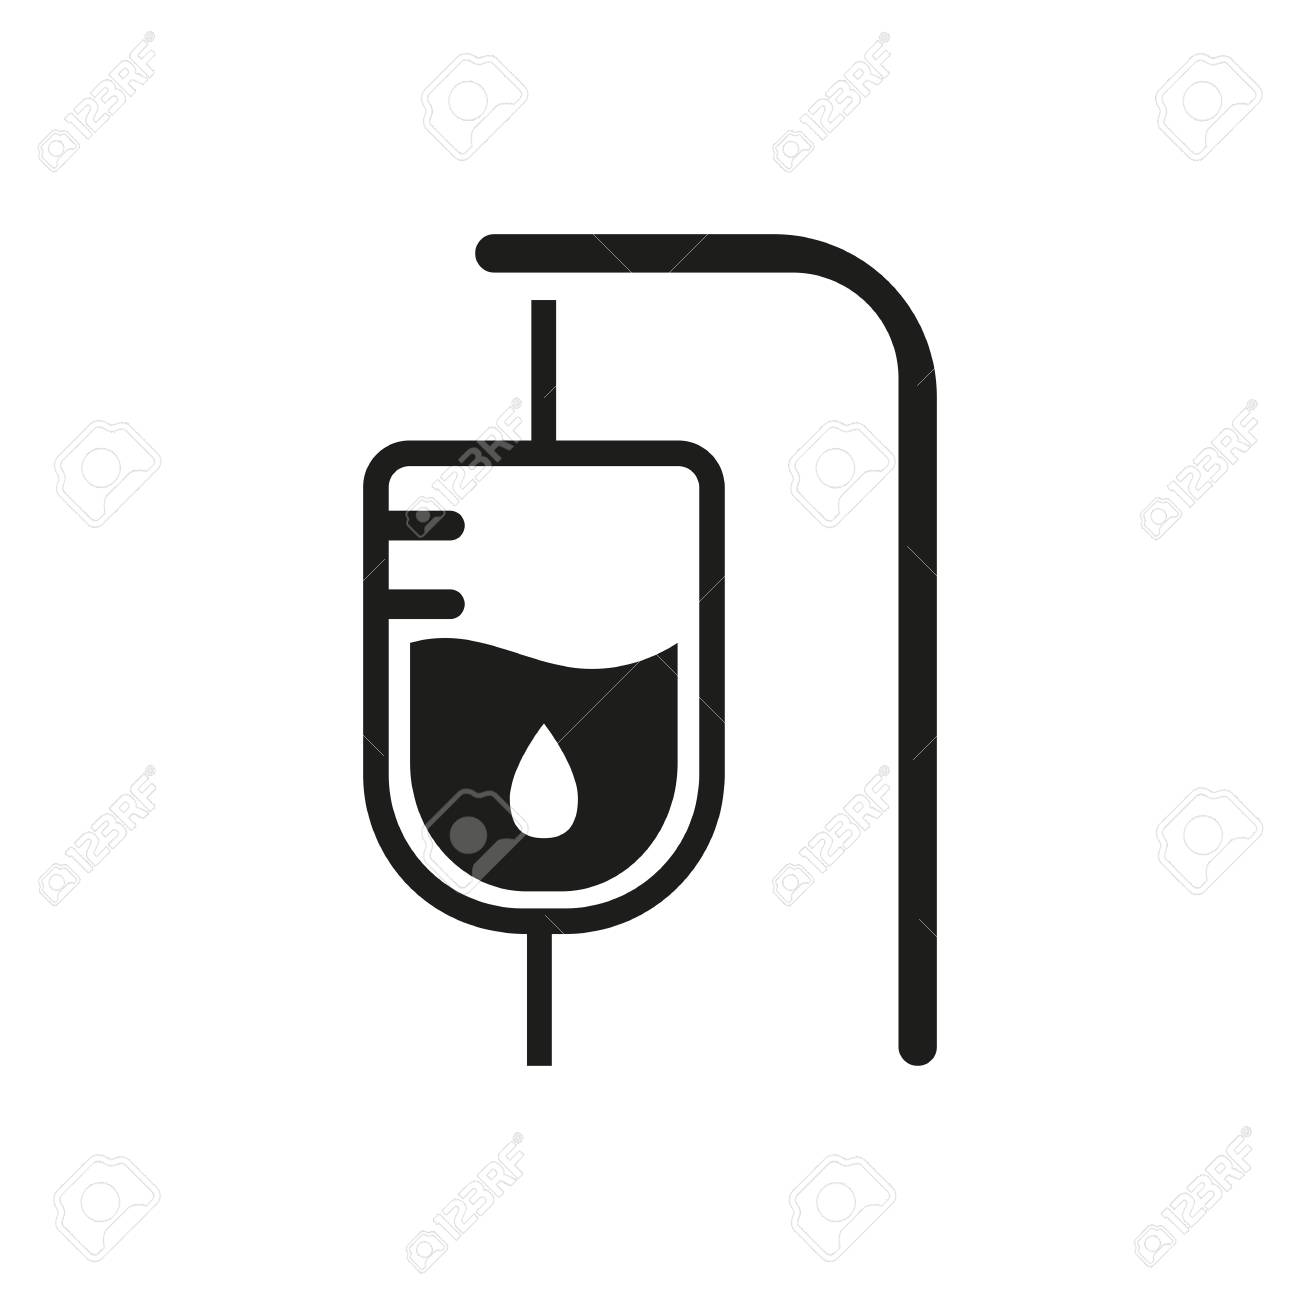 Icon of intensive therapy room emergency intravenous feeding icon of intensive therapy room emergency intravenous feeding transfusion hospital room concept buycottarizona Images